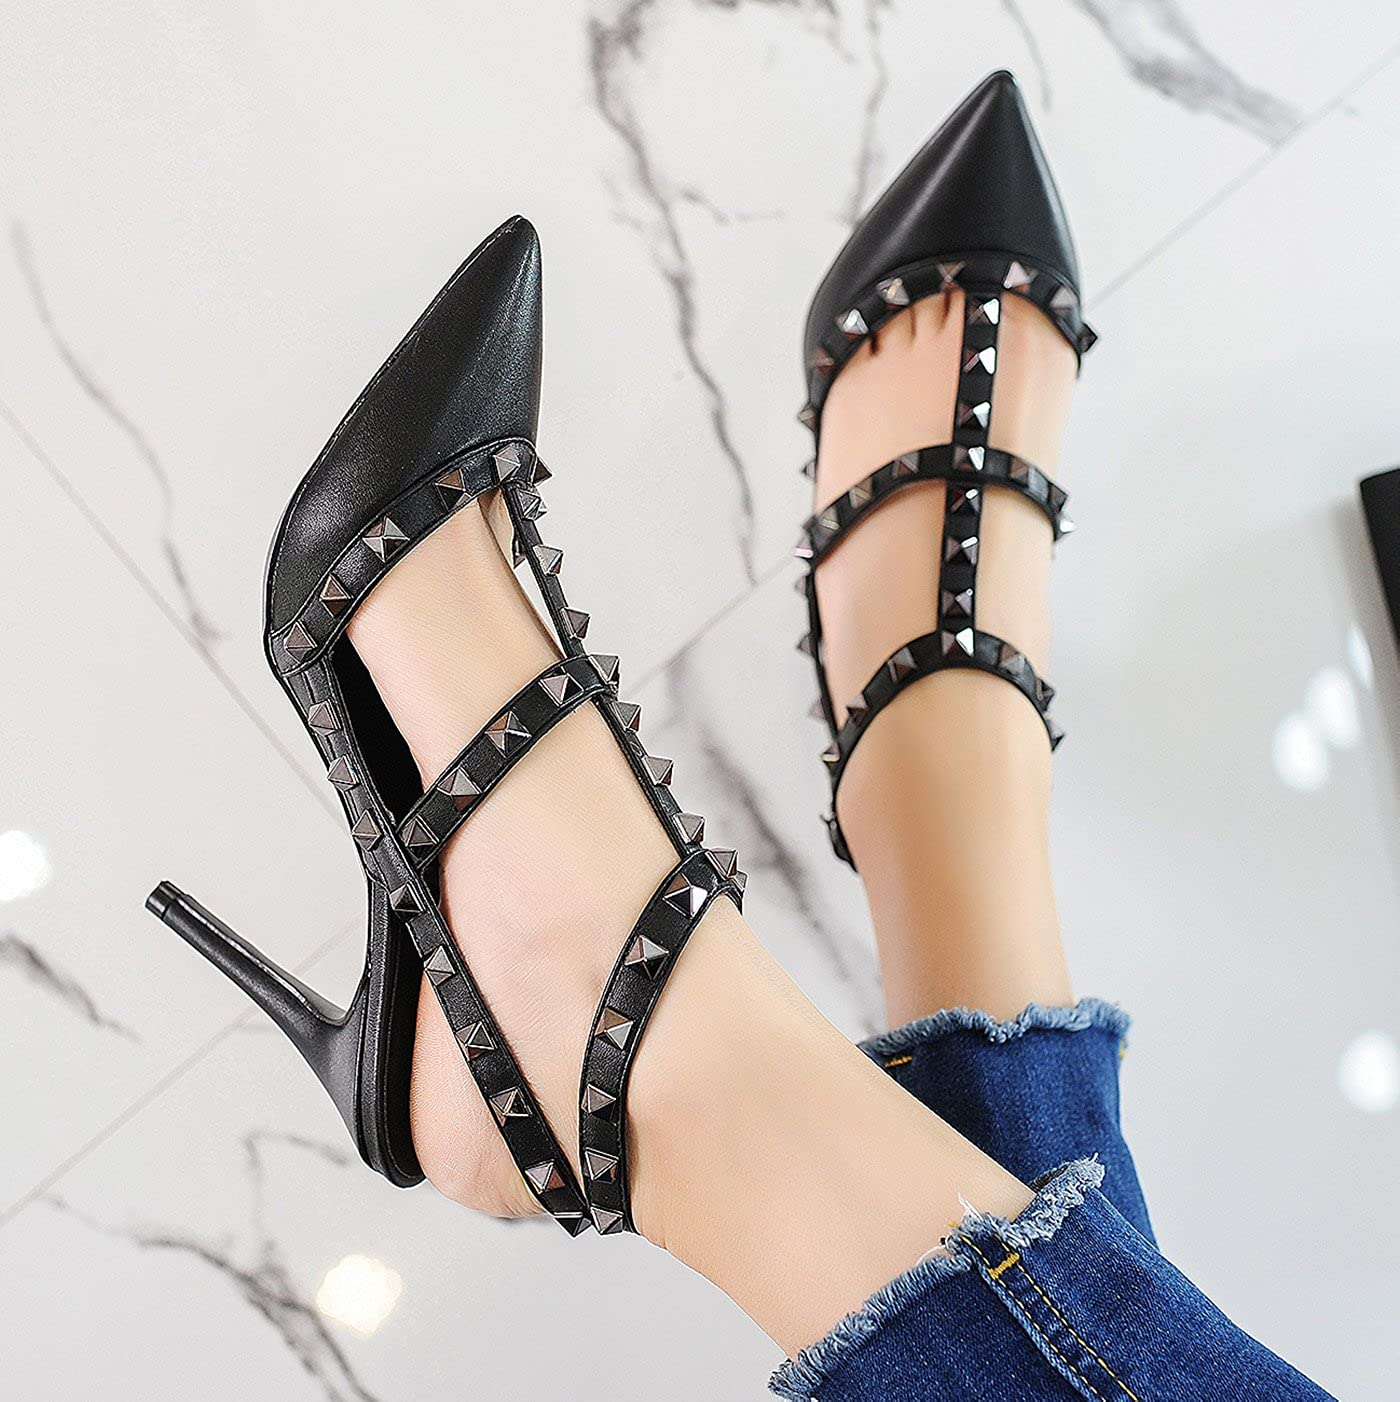 763e65c9409b ... CAMSSOO Womens Classic Studded Strappy Pumps Rivets High Heels Stiletto  Sandals T-Strap Shoes CMTH95A ...